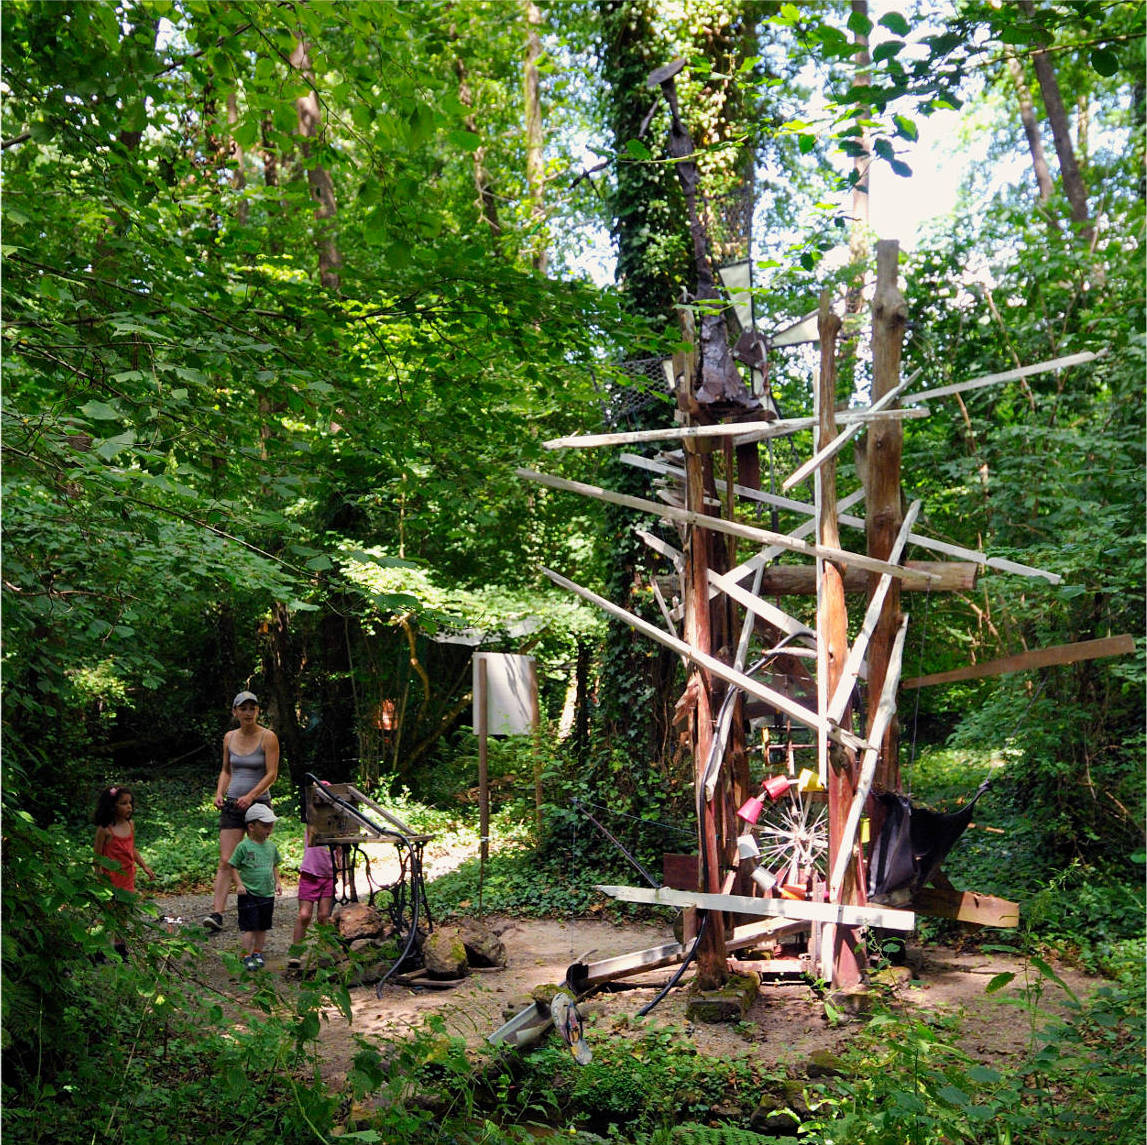 Moulin, sculture en bois